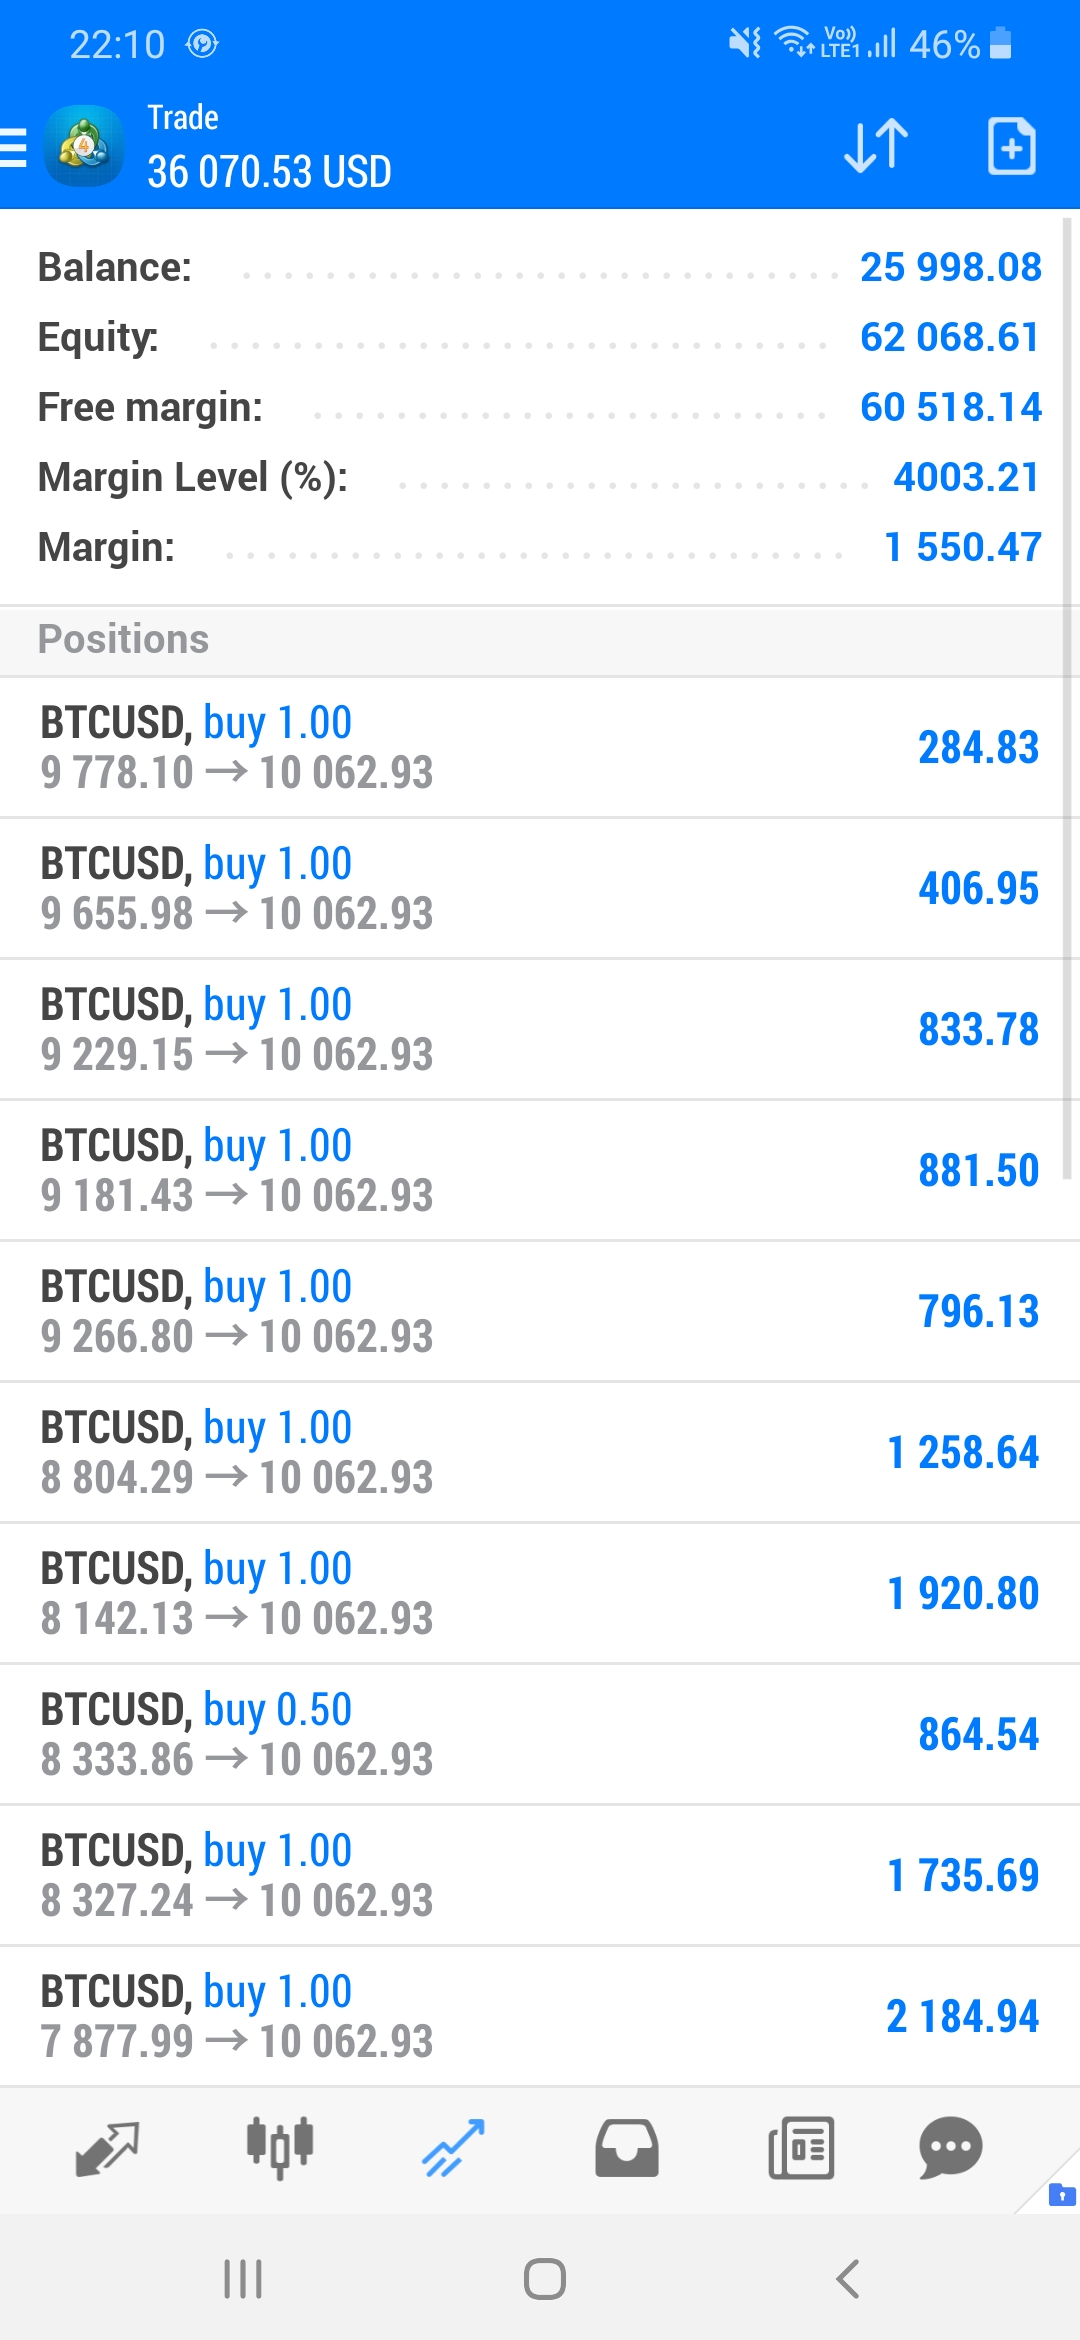 Screenshot_20200209-221046_MetaTrader 4.